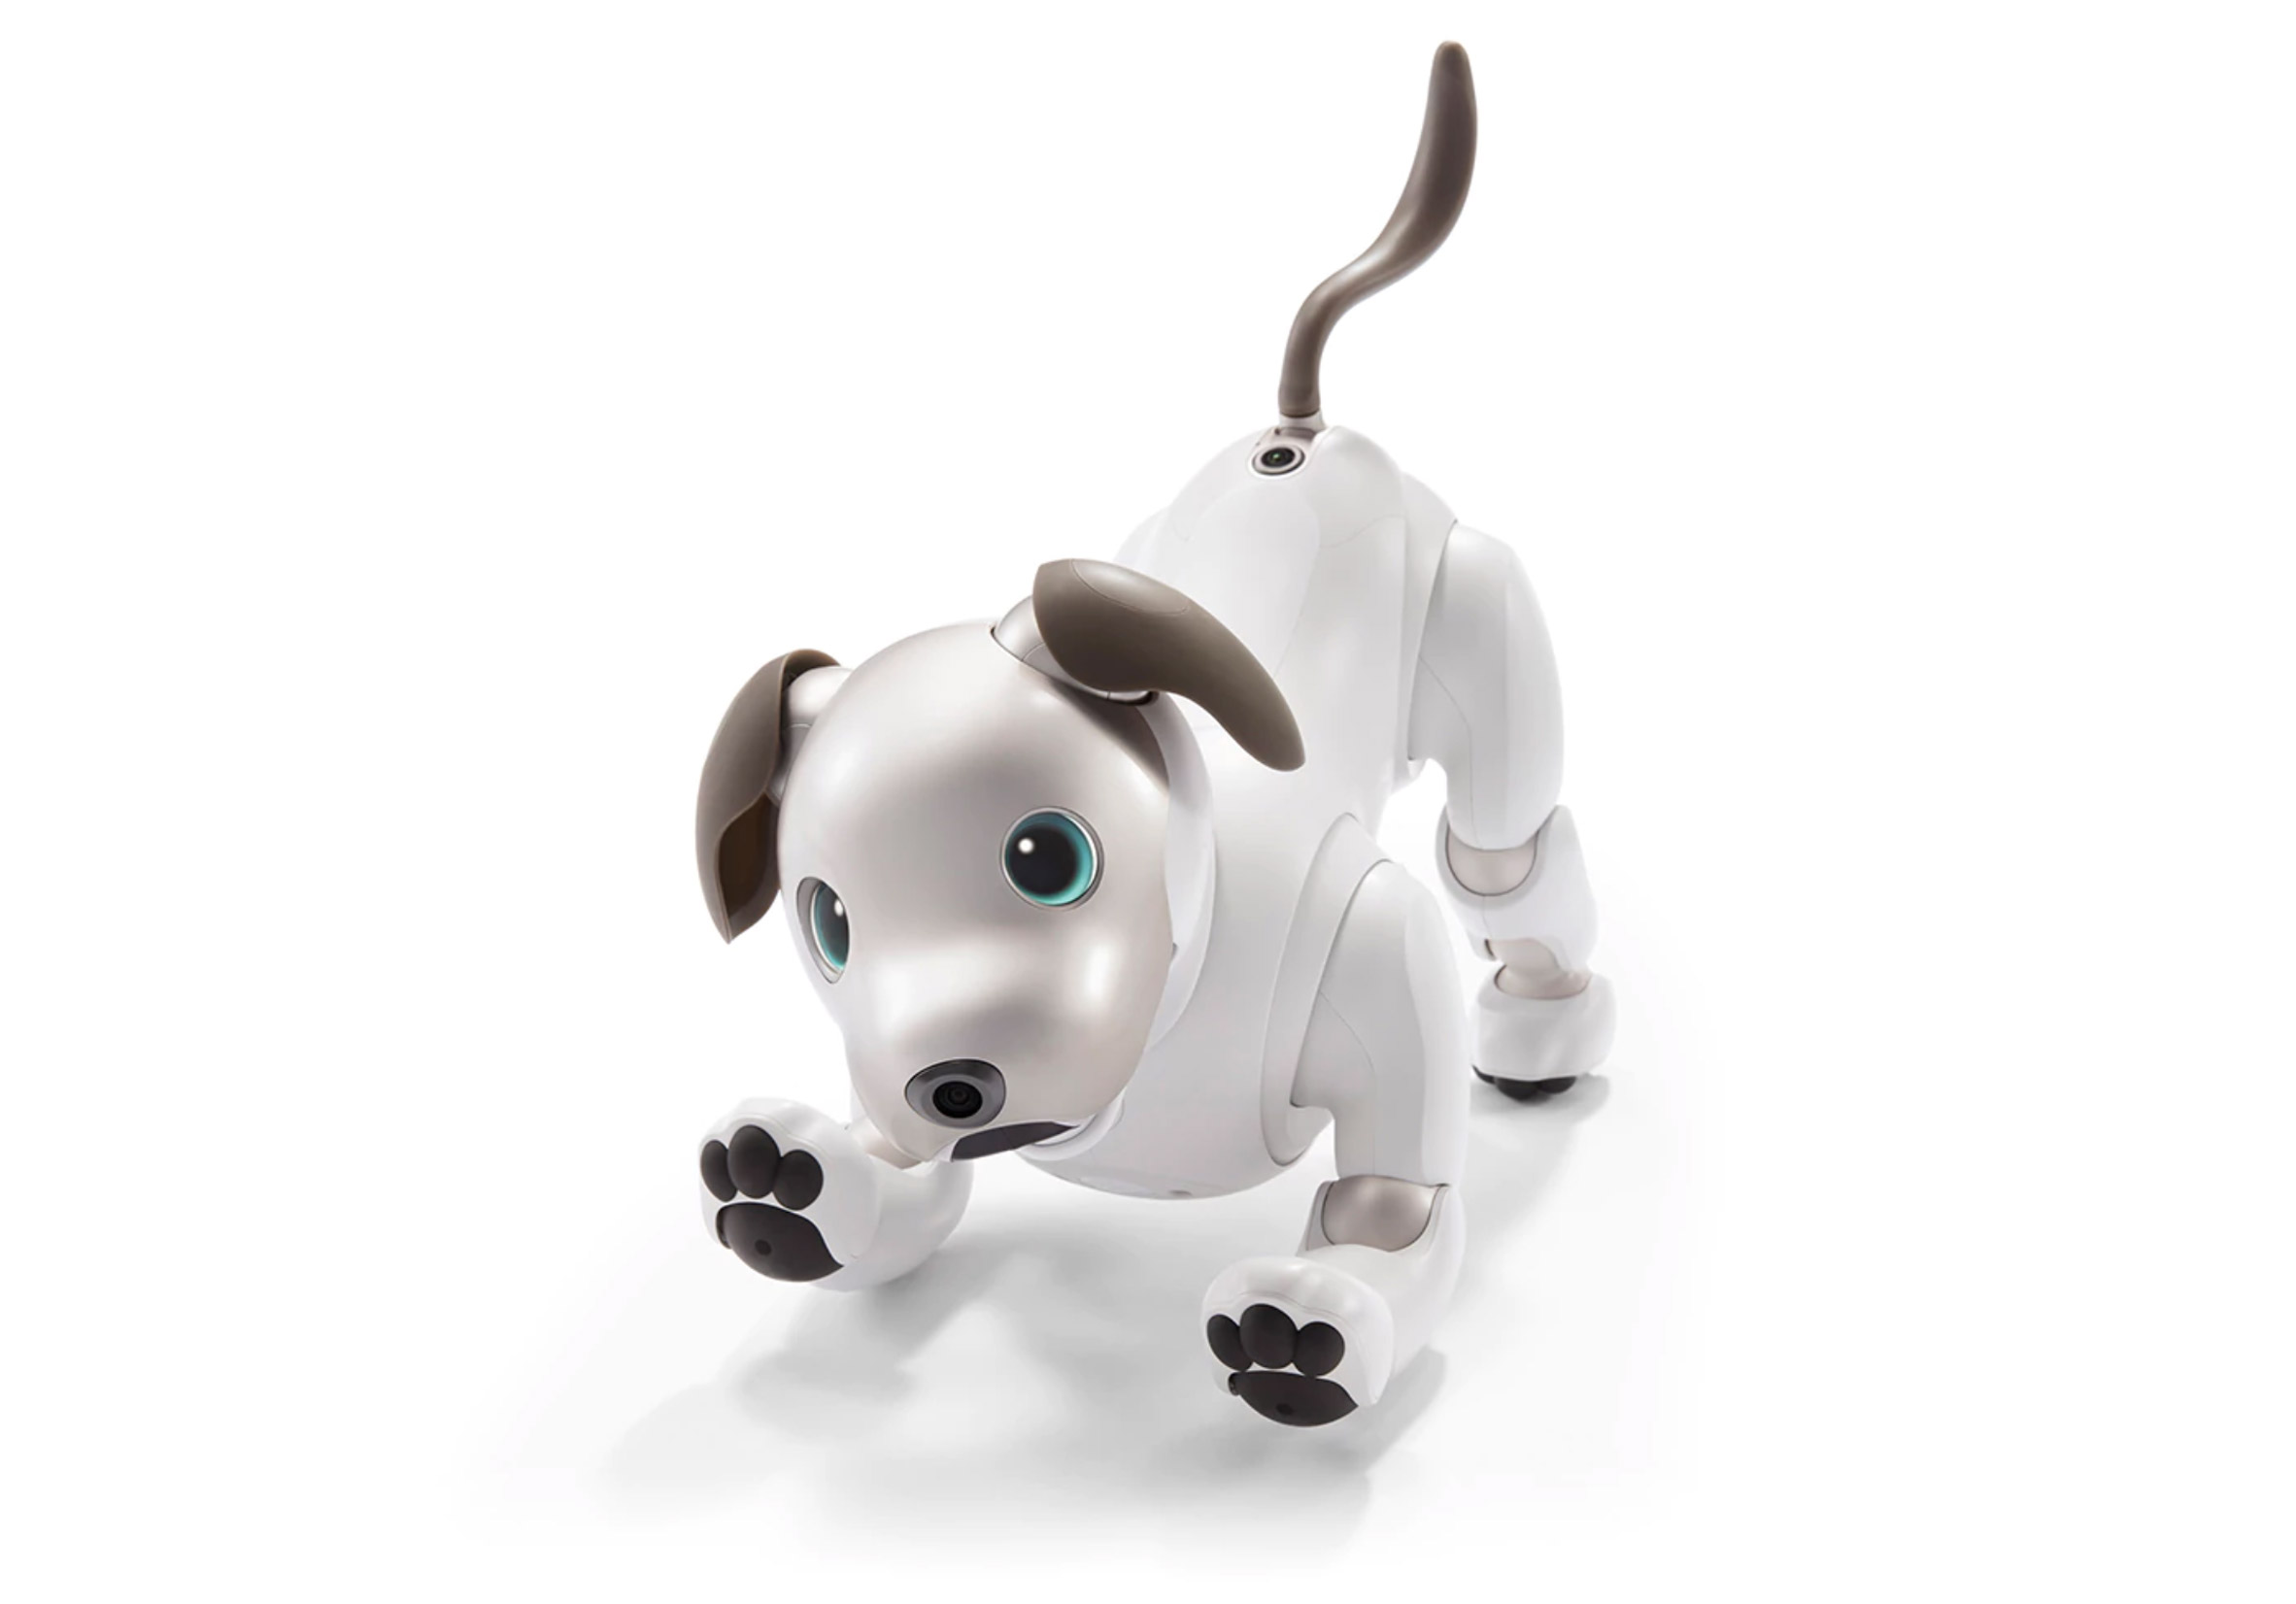 Sony uses artificial intelligence to bring Aibo robot dog back to life